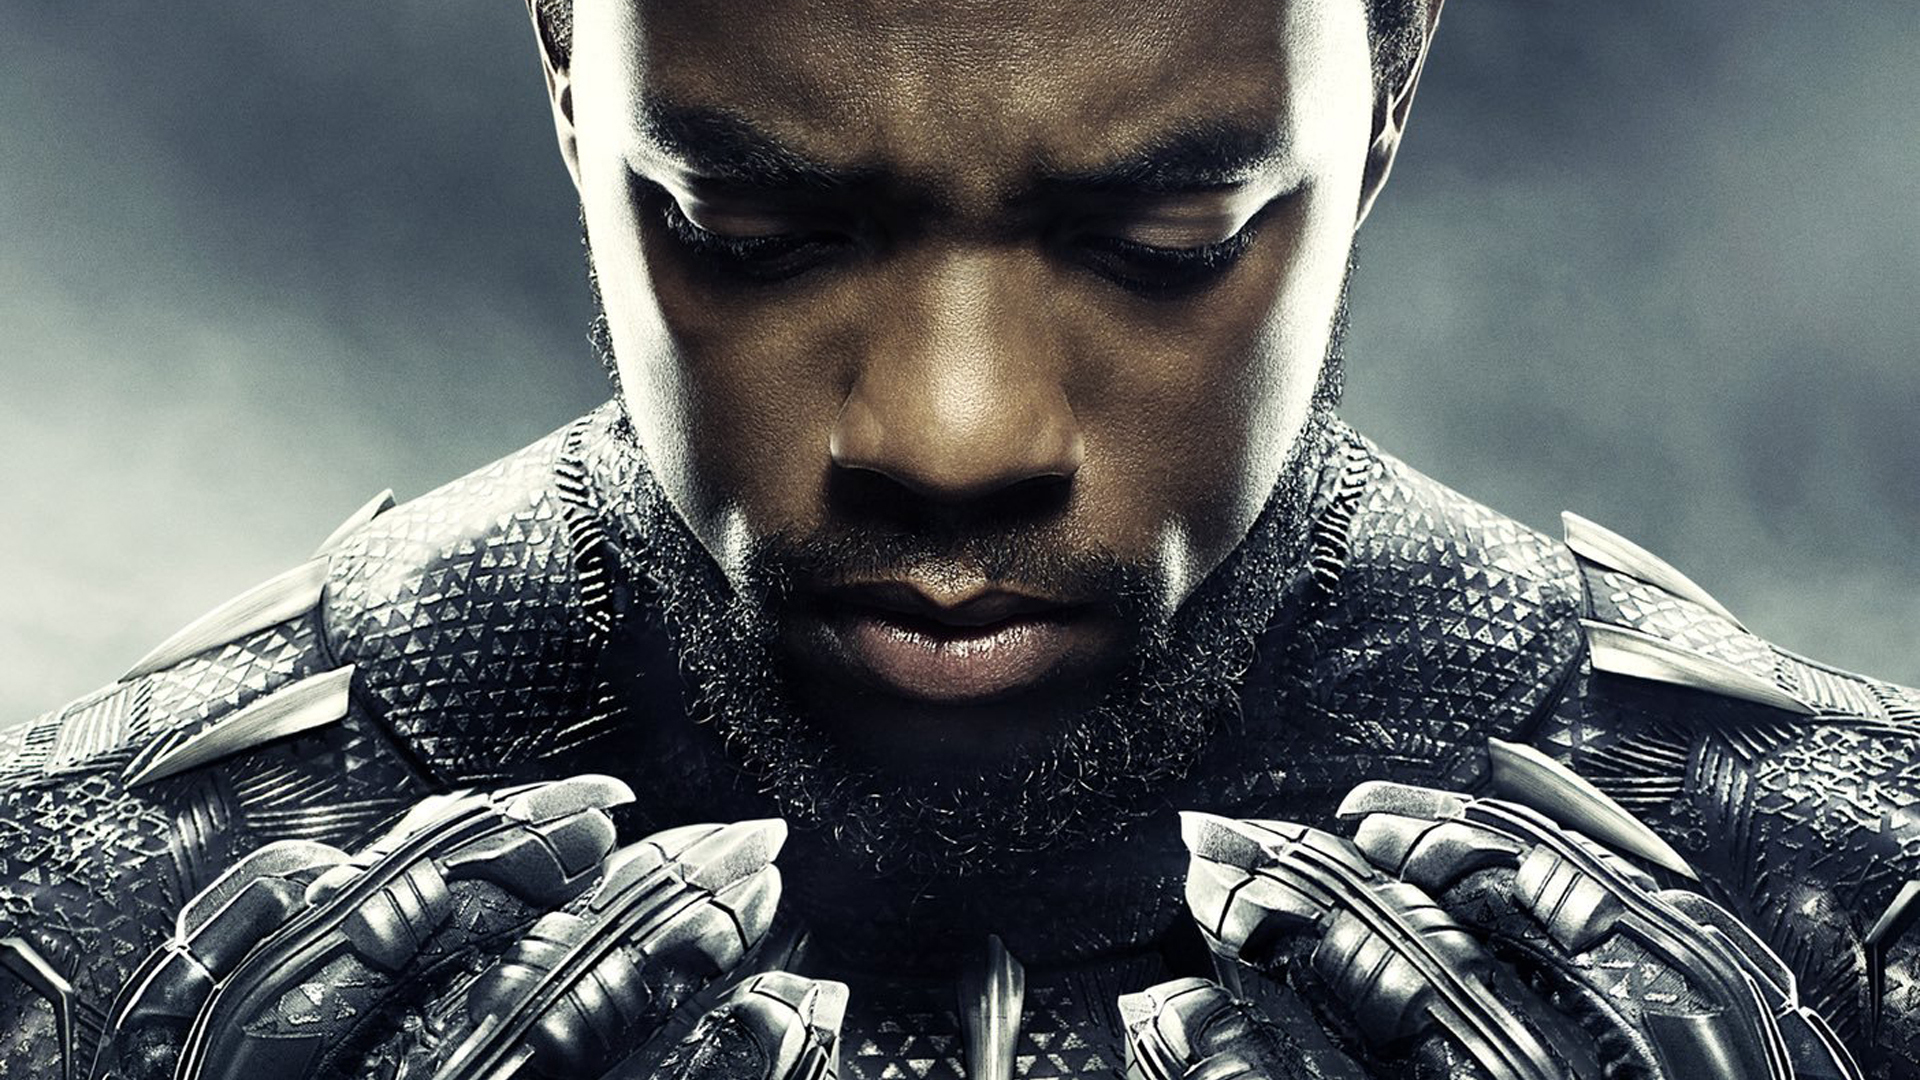 1920x1080 Chadwick Boseman In Black Panther 1080p Laptop